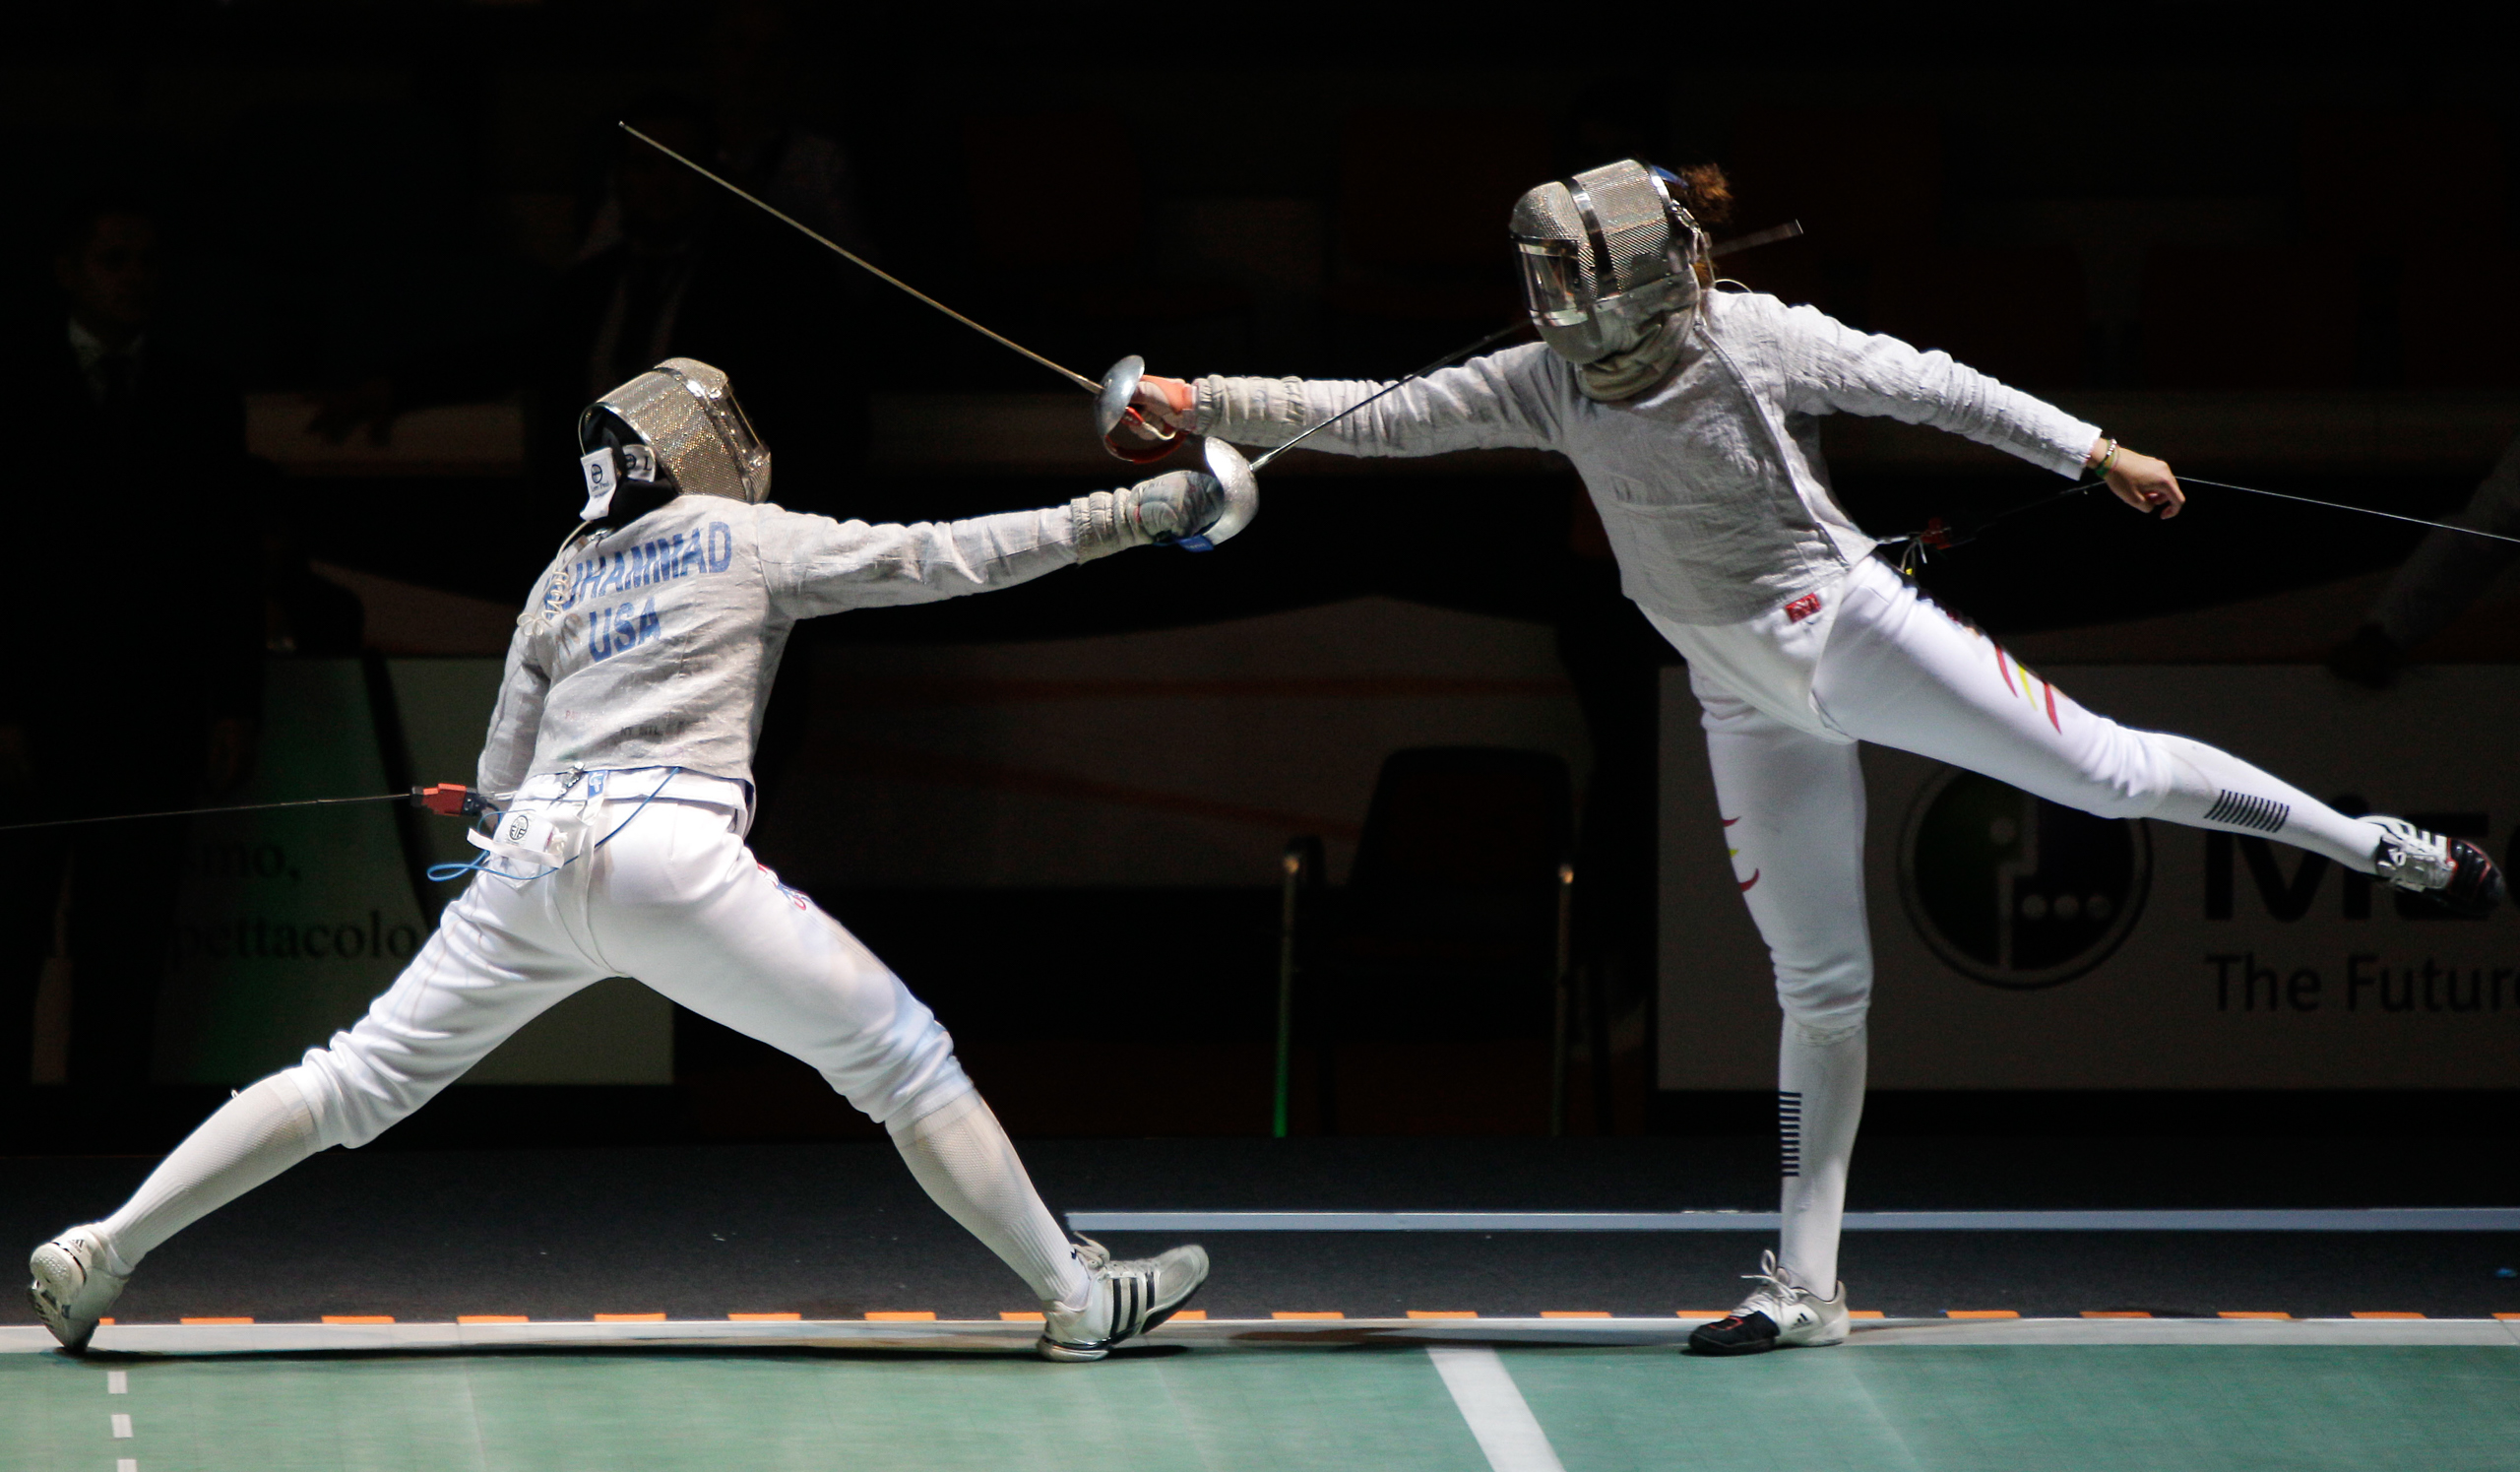 <strong>Ibtihaj Muhammad, Fencing, USA</strong>Muhammad picked up fencing in eighth grade in part because the body-length attire accommodated her Muslim faith. The Duke grad will be the first American Olympian to compete in a hijab.